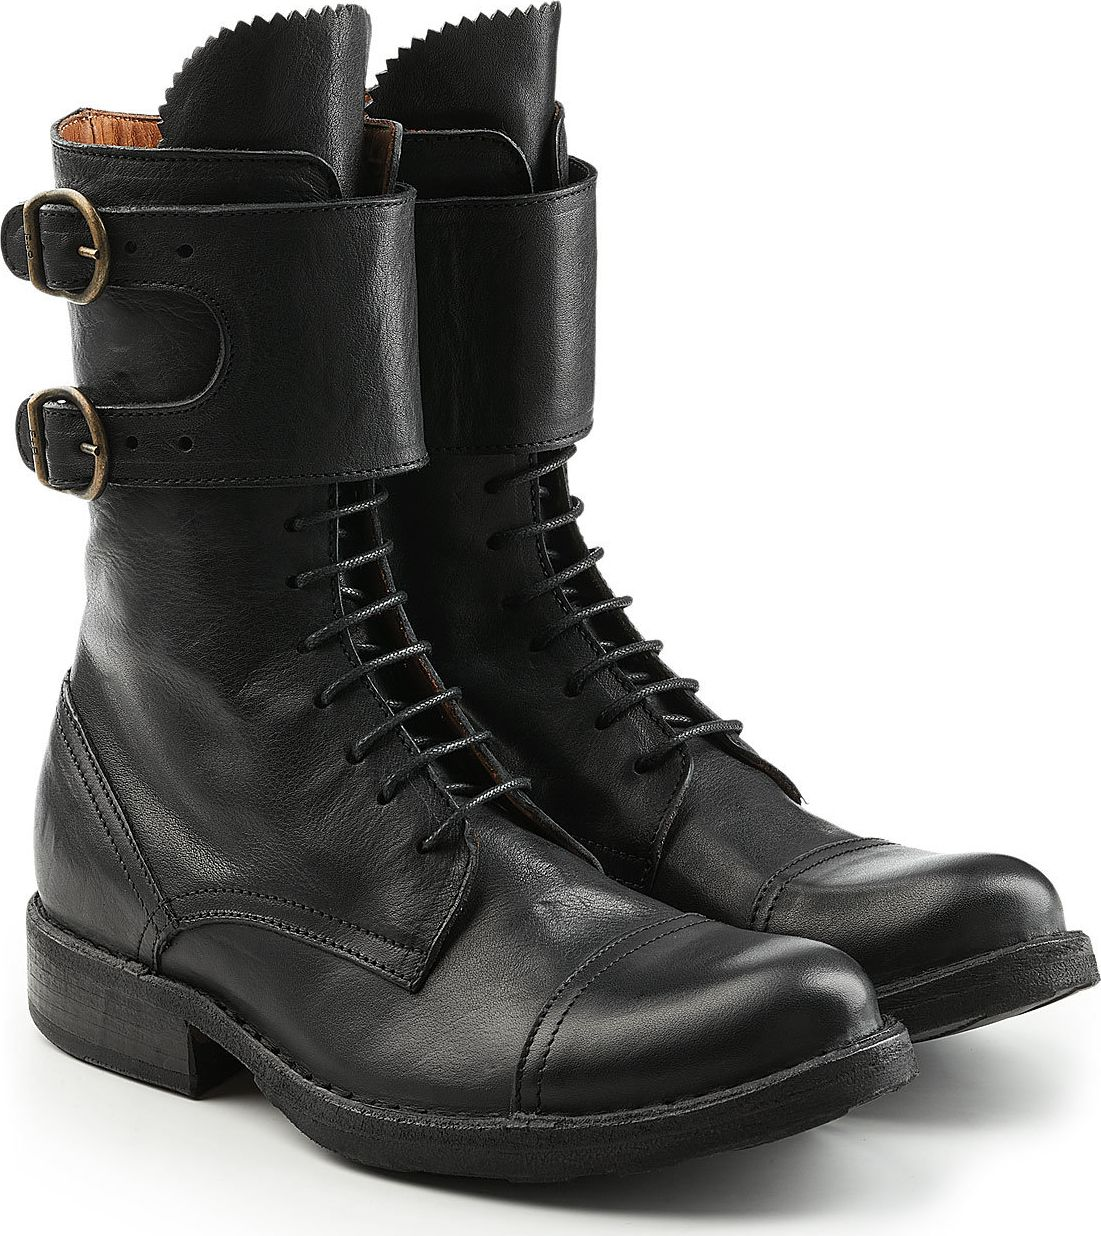 Fiorentini + Baker - Leather Boots with Lace-Up Front